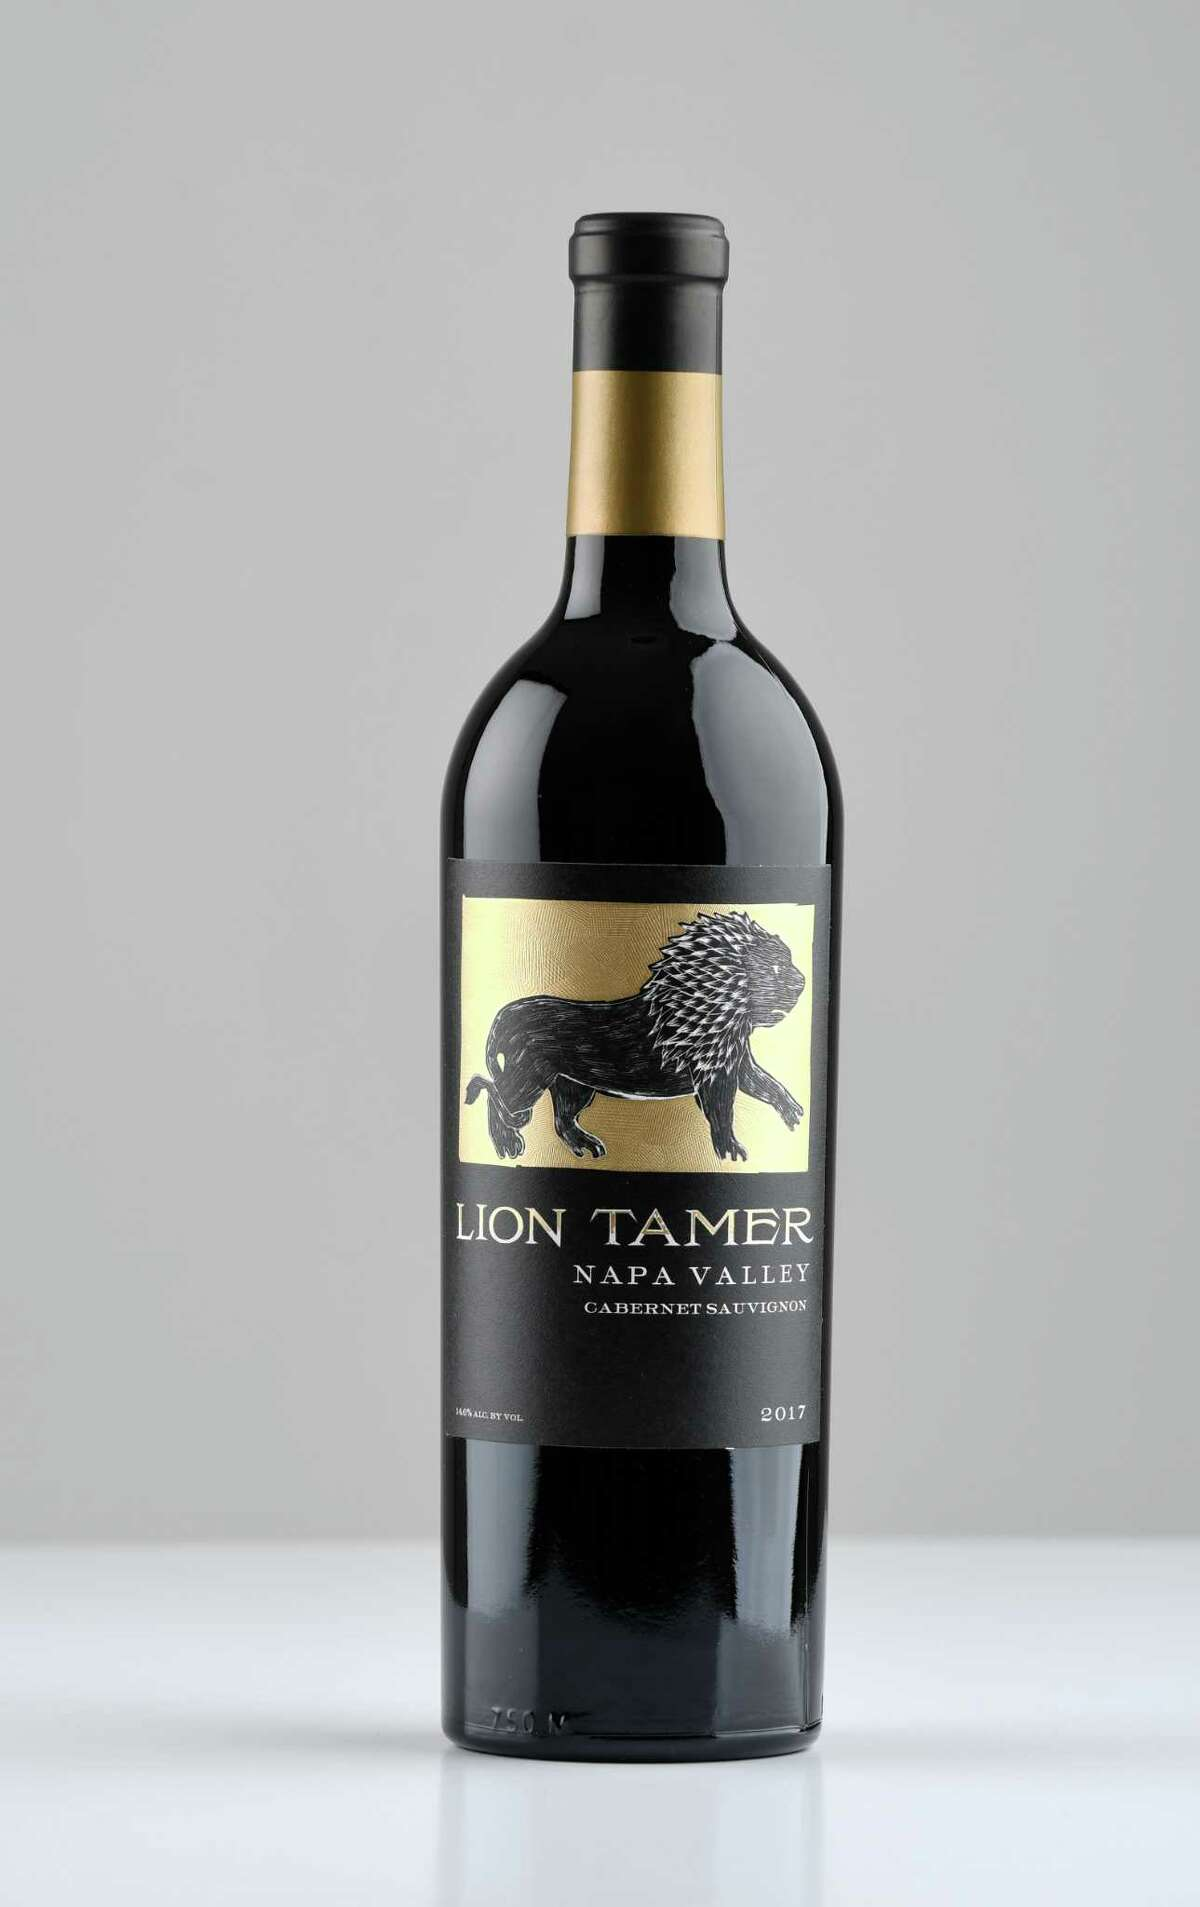 Lion Tamer cabernet sauvignon on Friday, Feb. 7, 2020, at the Times Union in Colonie, N.Y. (Will Waldron/Times Union)